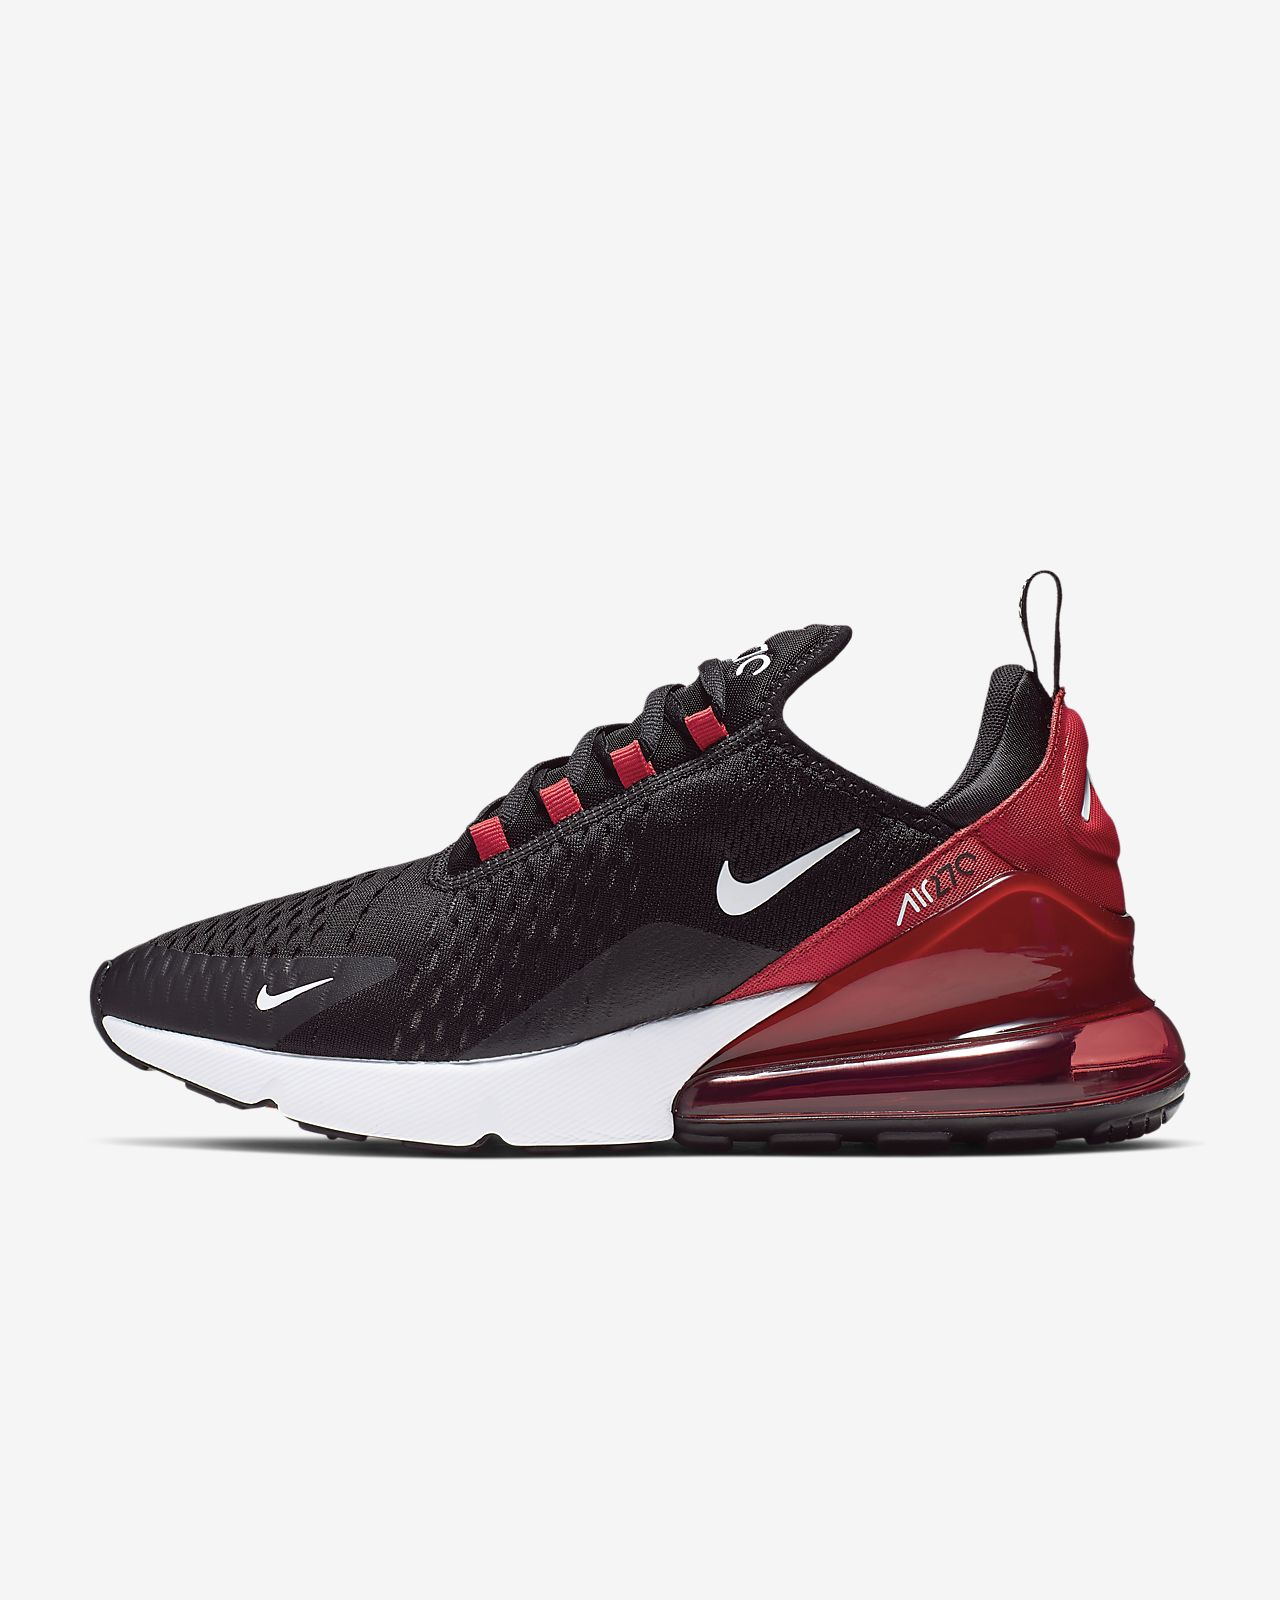 adb05b1b634a Nike Air Max 270 Men s Shoe. Nike.com GB